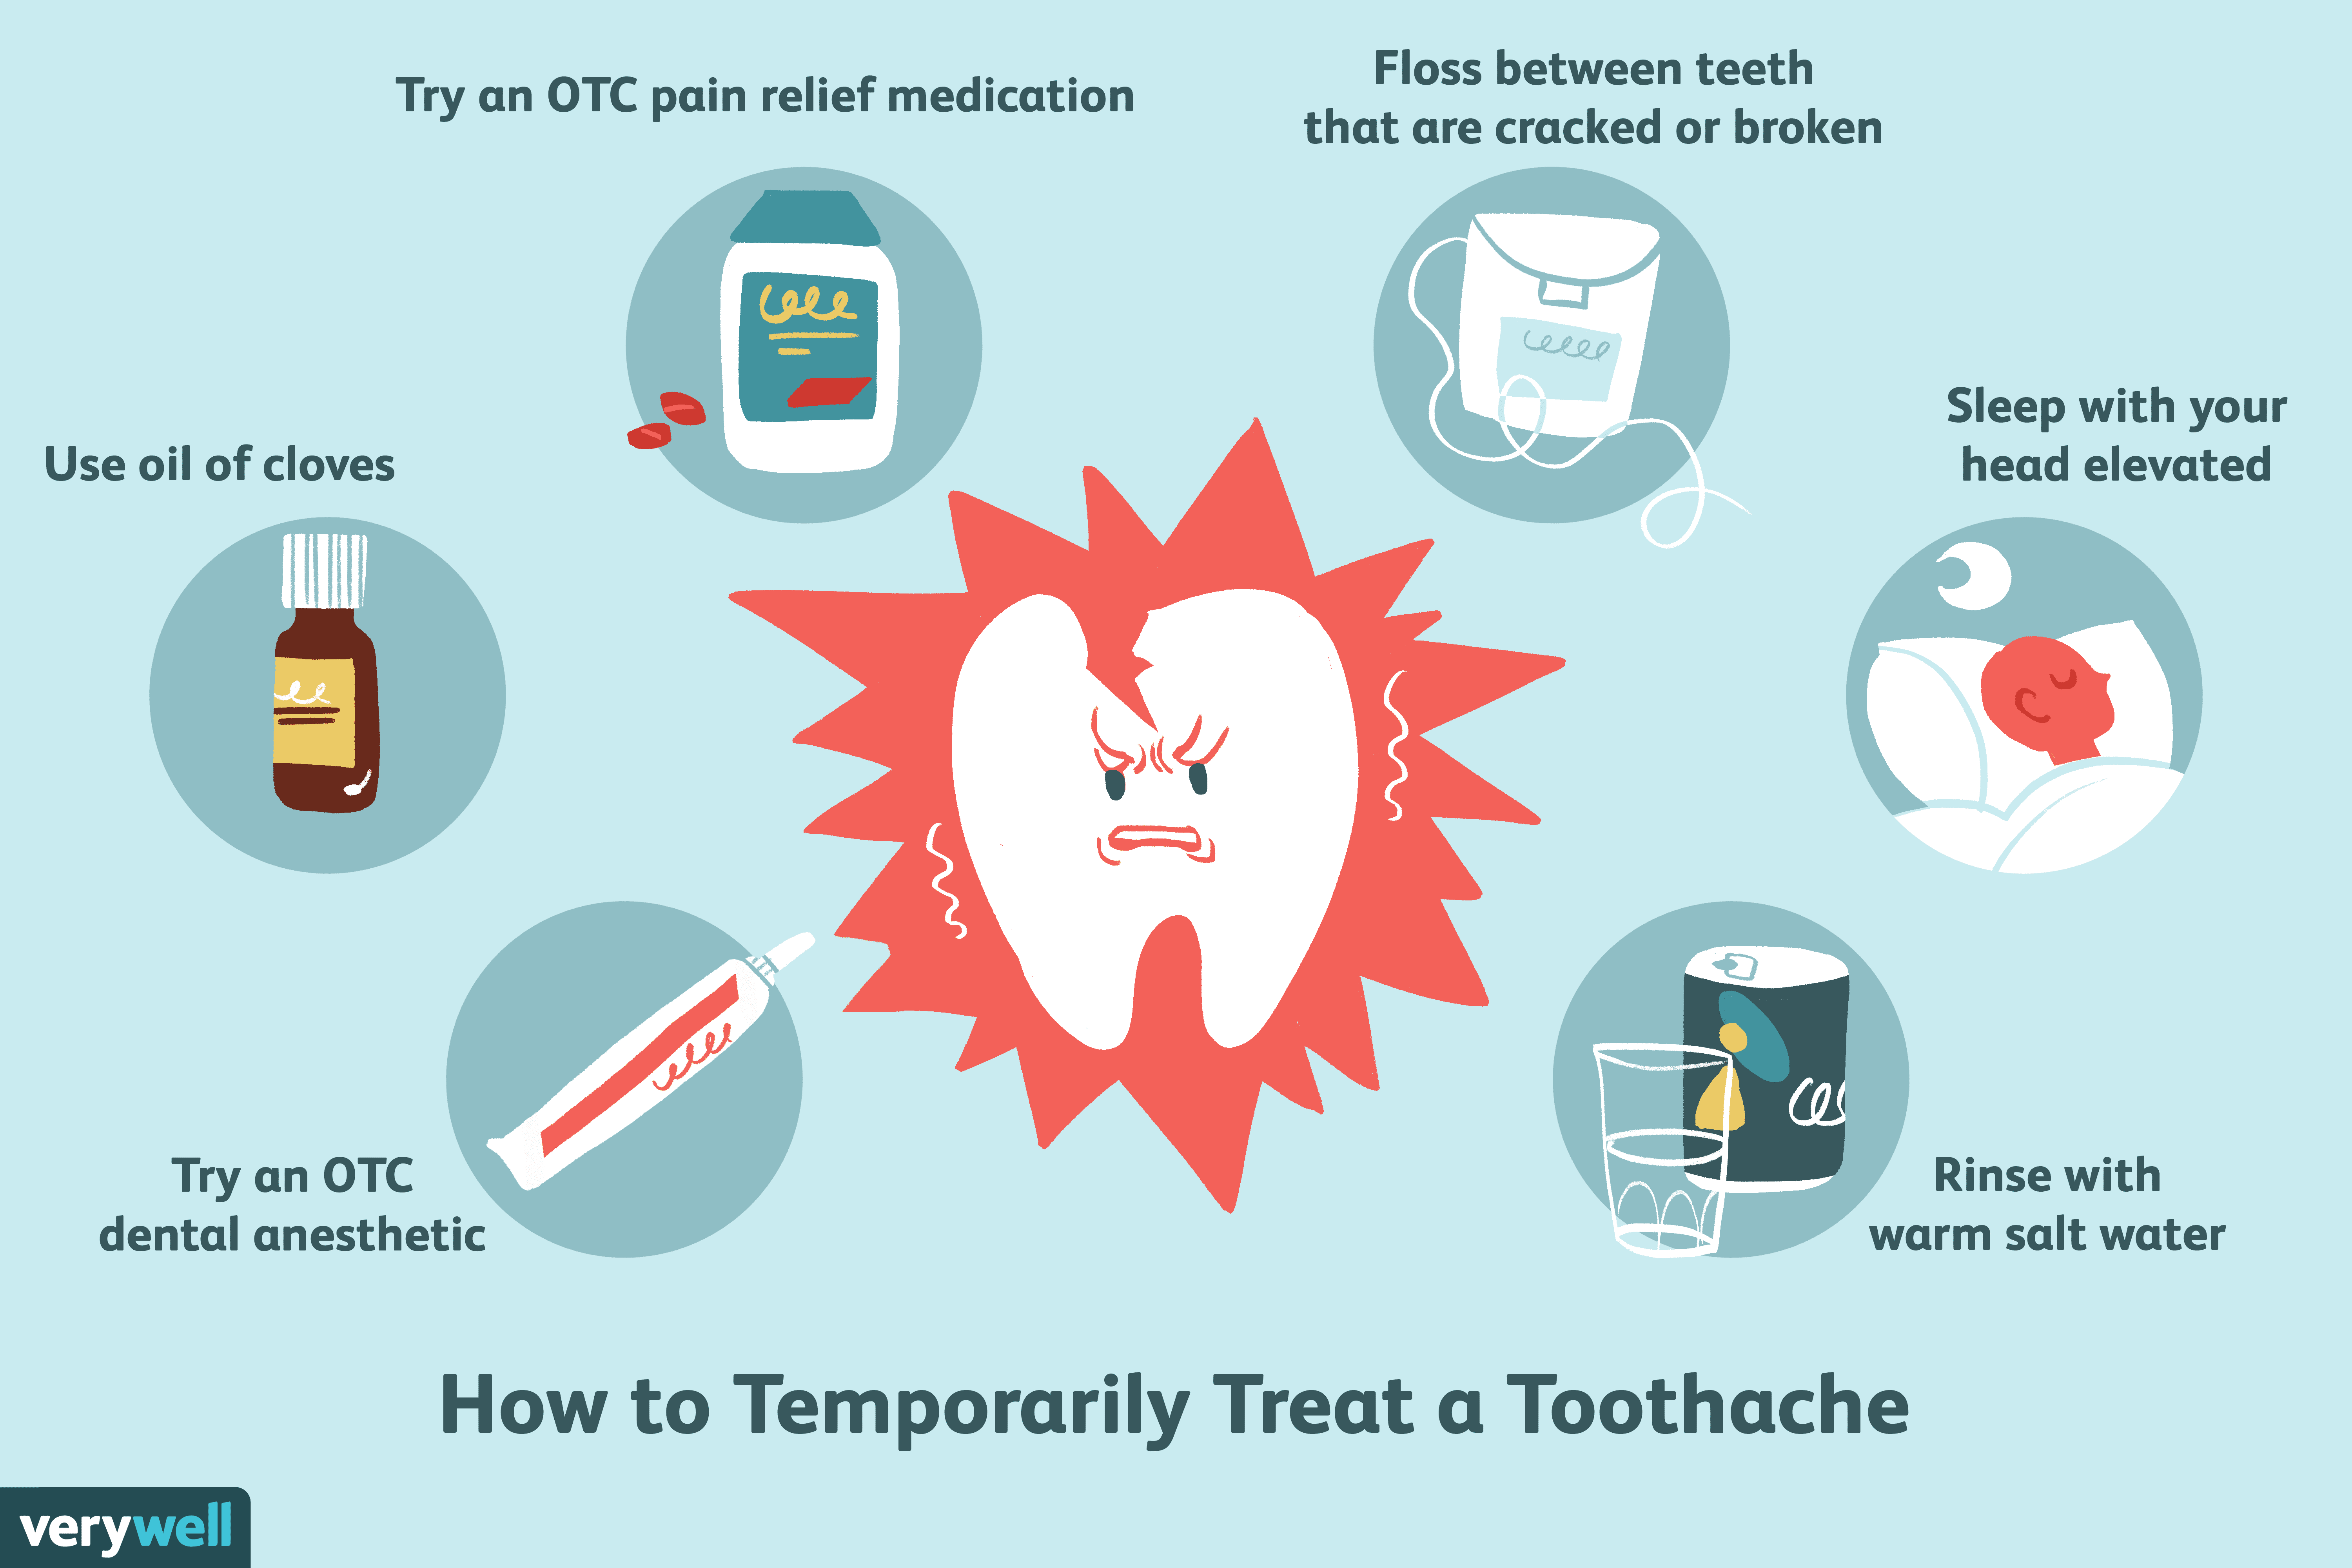 Relieve Pain From a Cracked or Broken Tooth